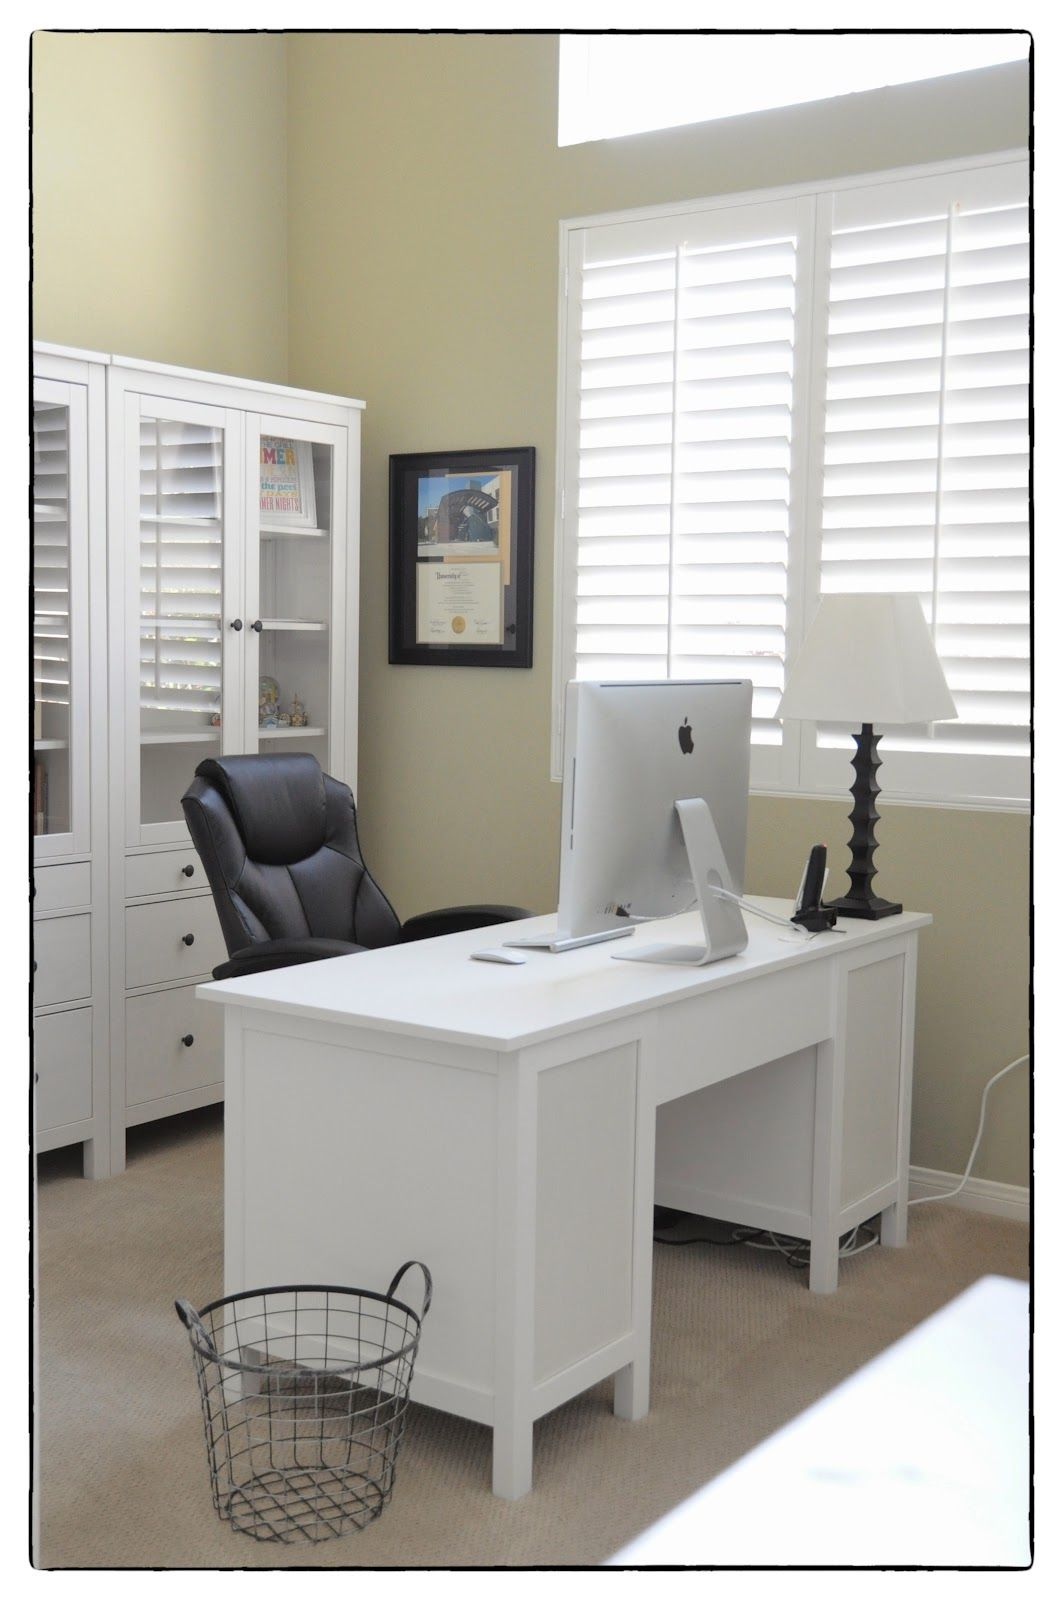 Pottery barn trash can - Ikeas Hemnes Cabinets And Office Perfectness Except The Trash Can Would Get Trash